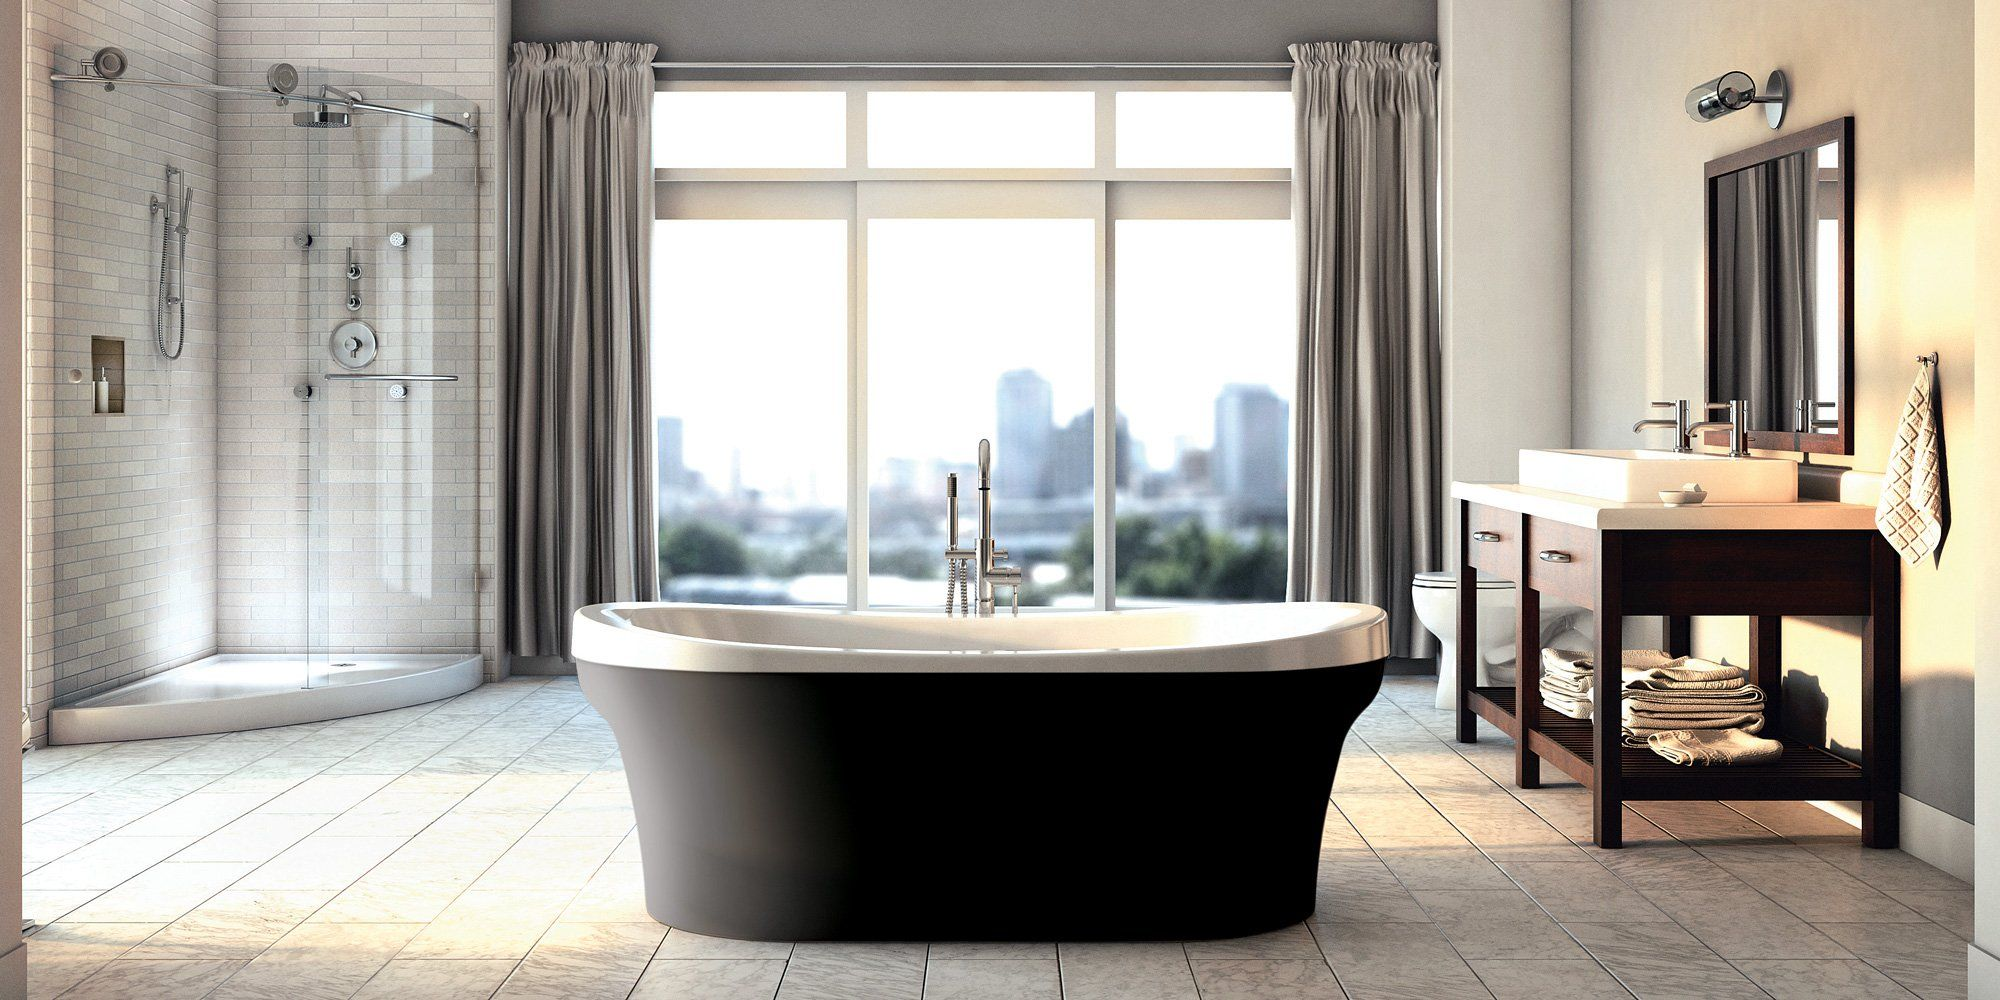 Produits Neptune ensuite with freestanding tub